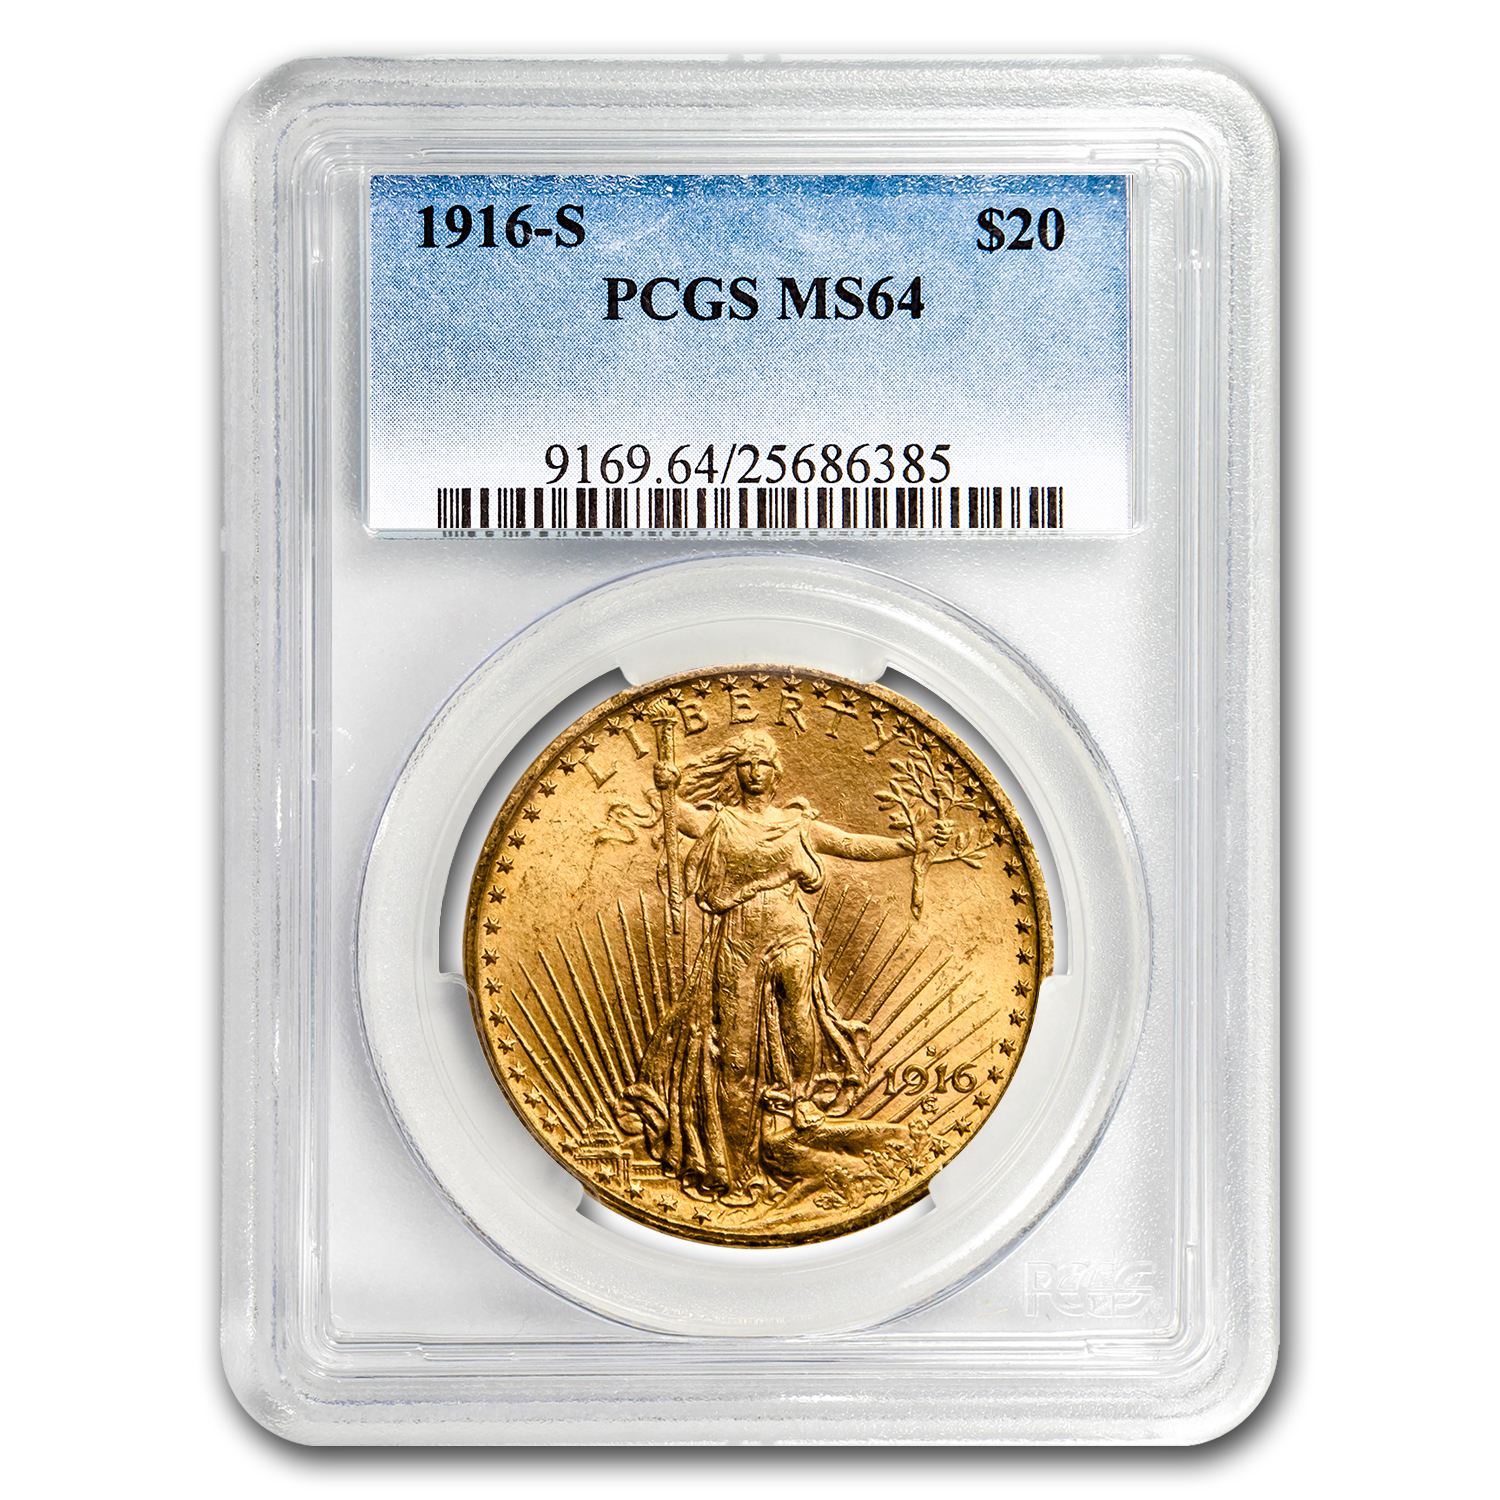 1916-S $20 Saint-Gaudens Gold Double Eagle MS-64 PCGS